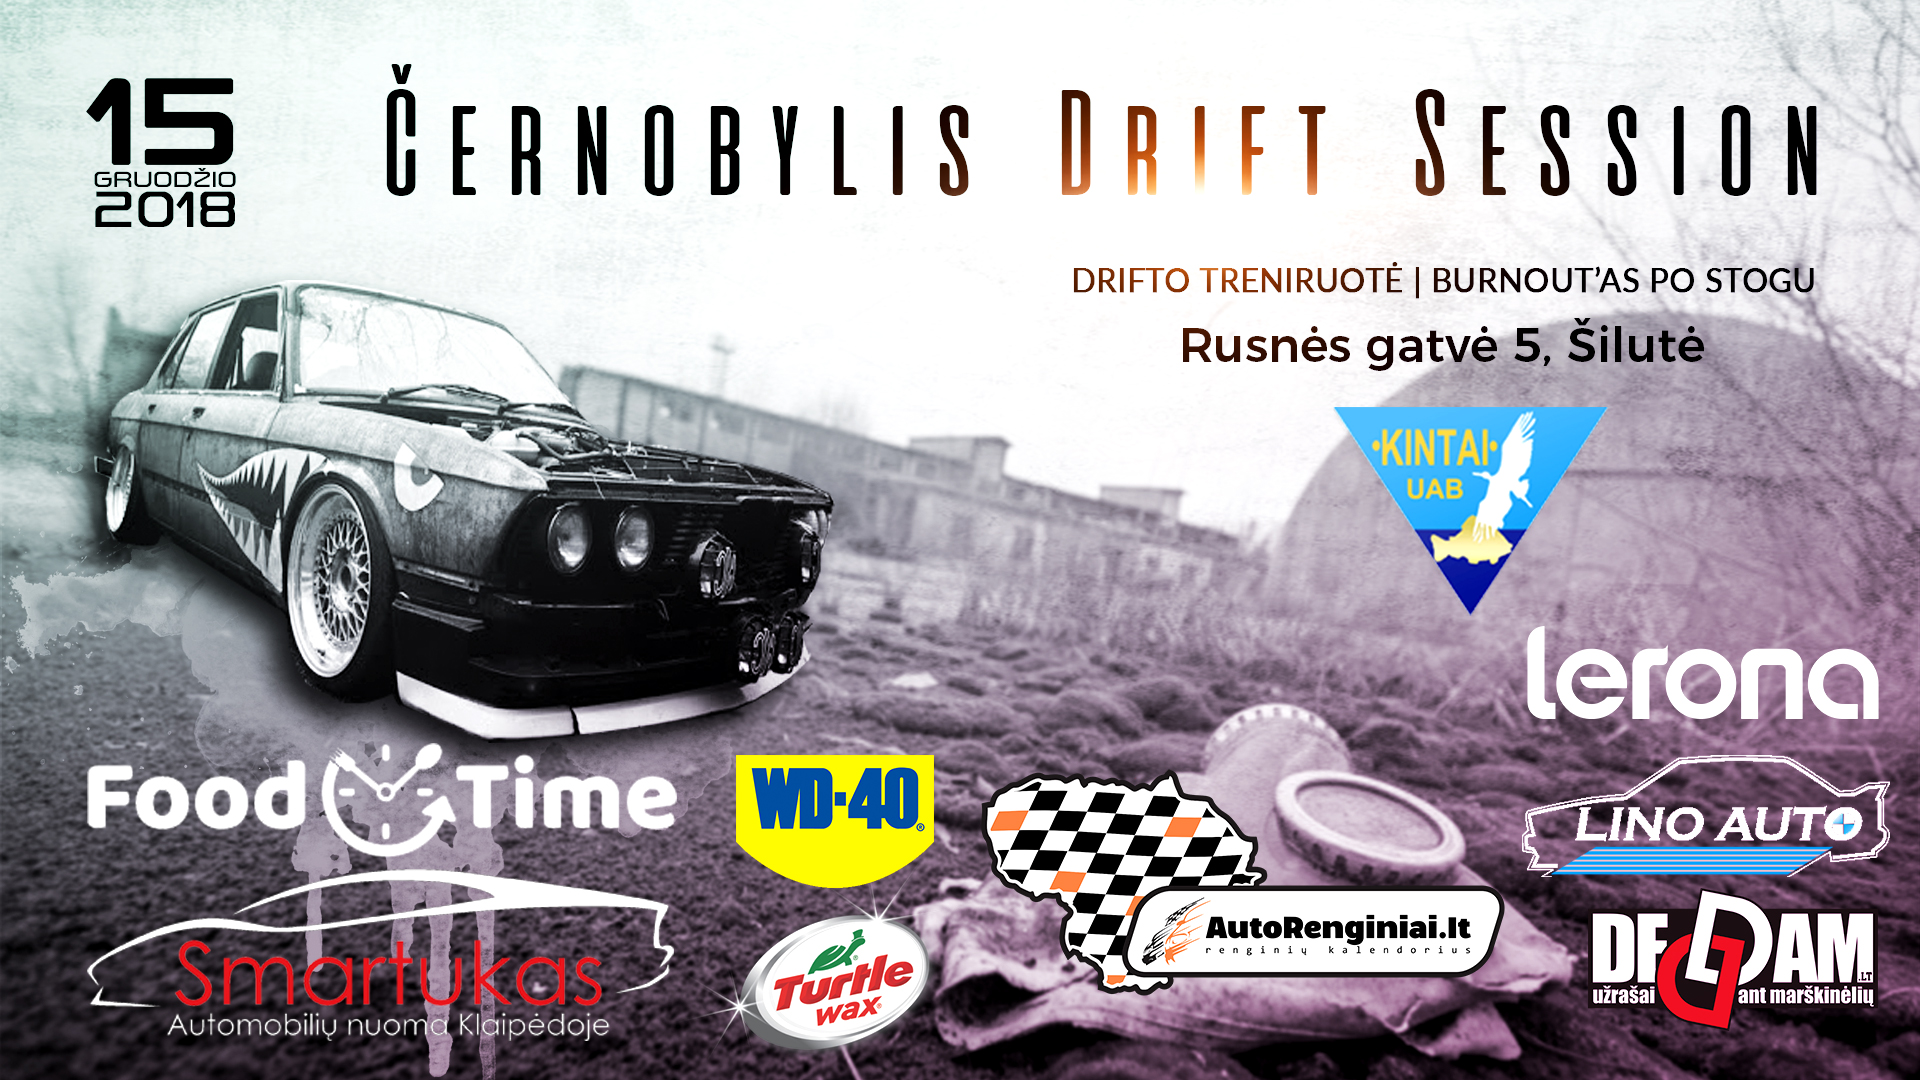 Černobylis Drift Session